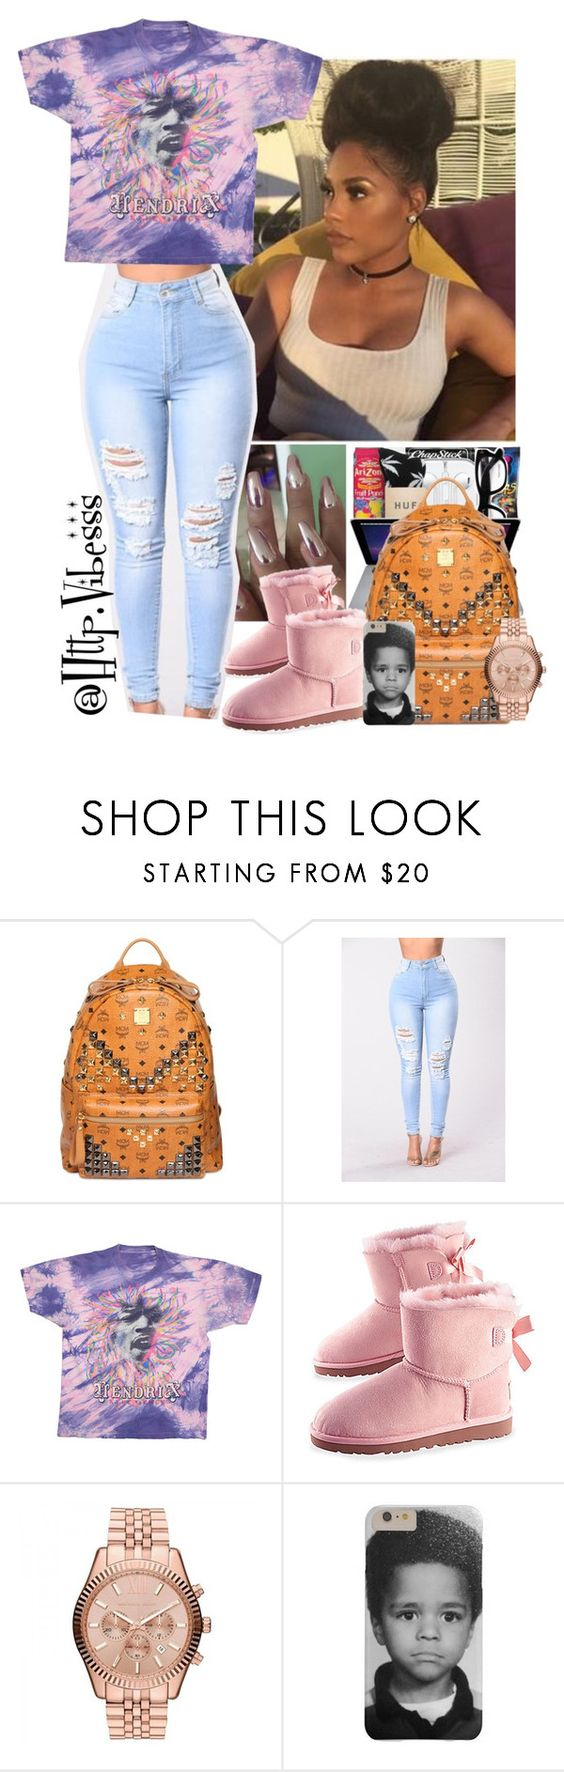 """Untitled #989"" by jazaiah7 ❤ liked on Polyvore featuring MCM and Michael Kors"